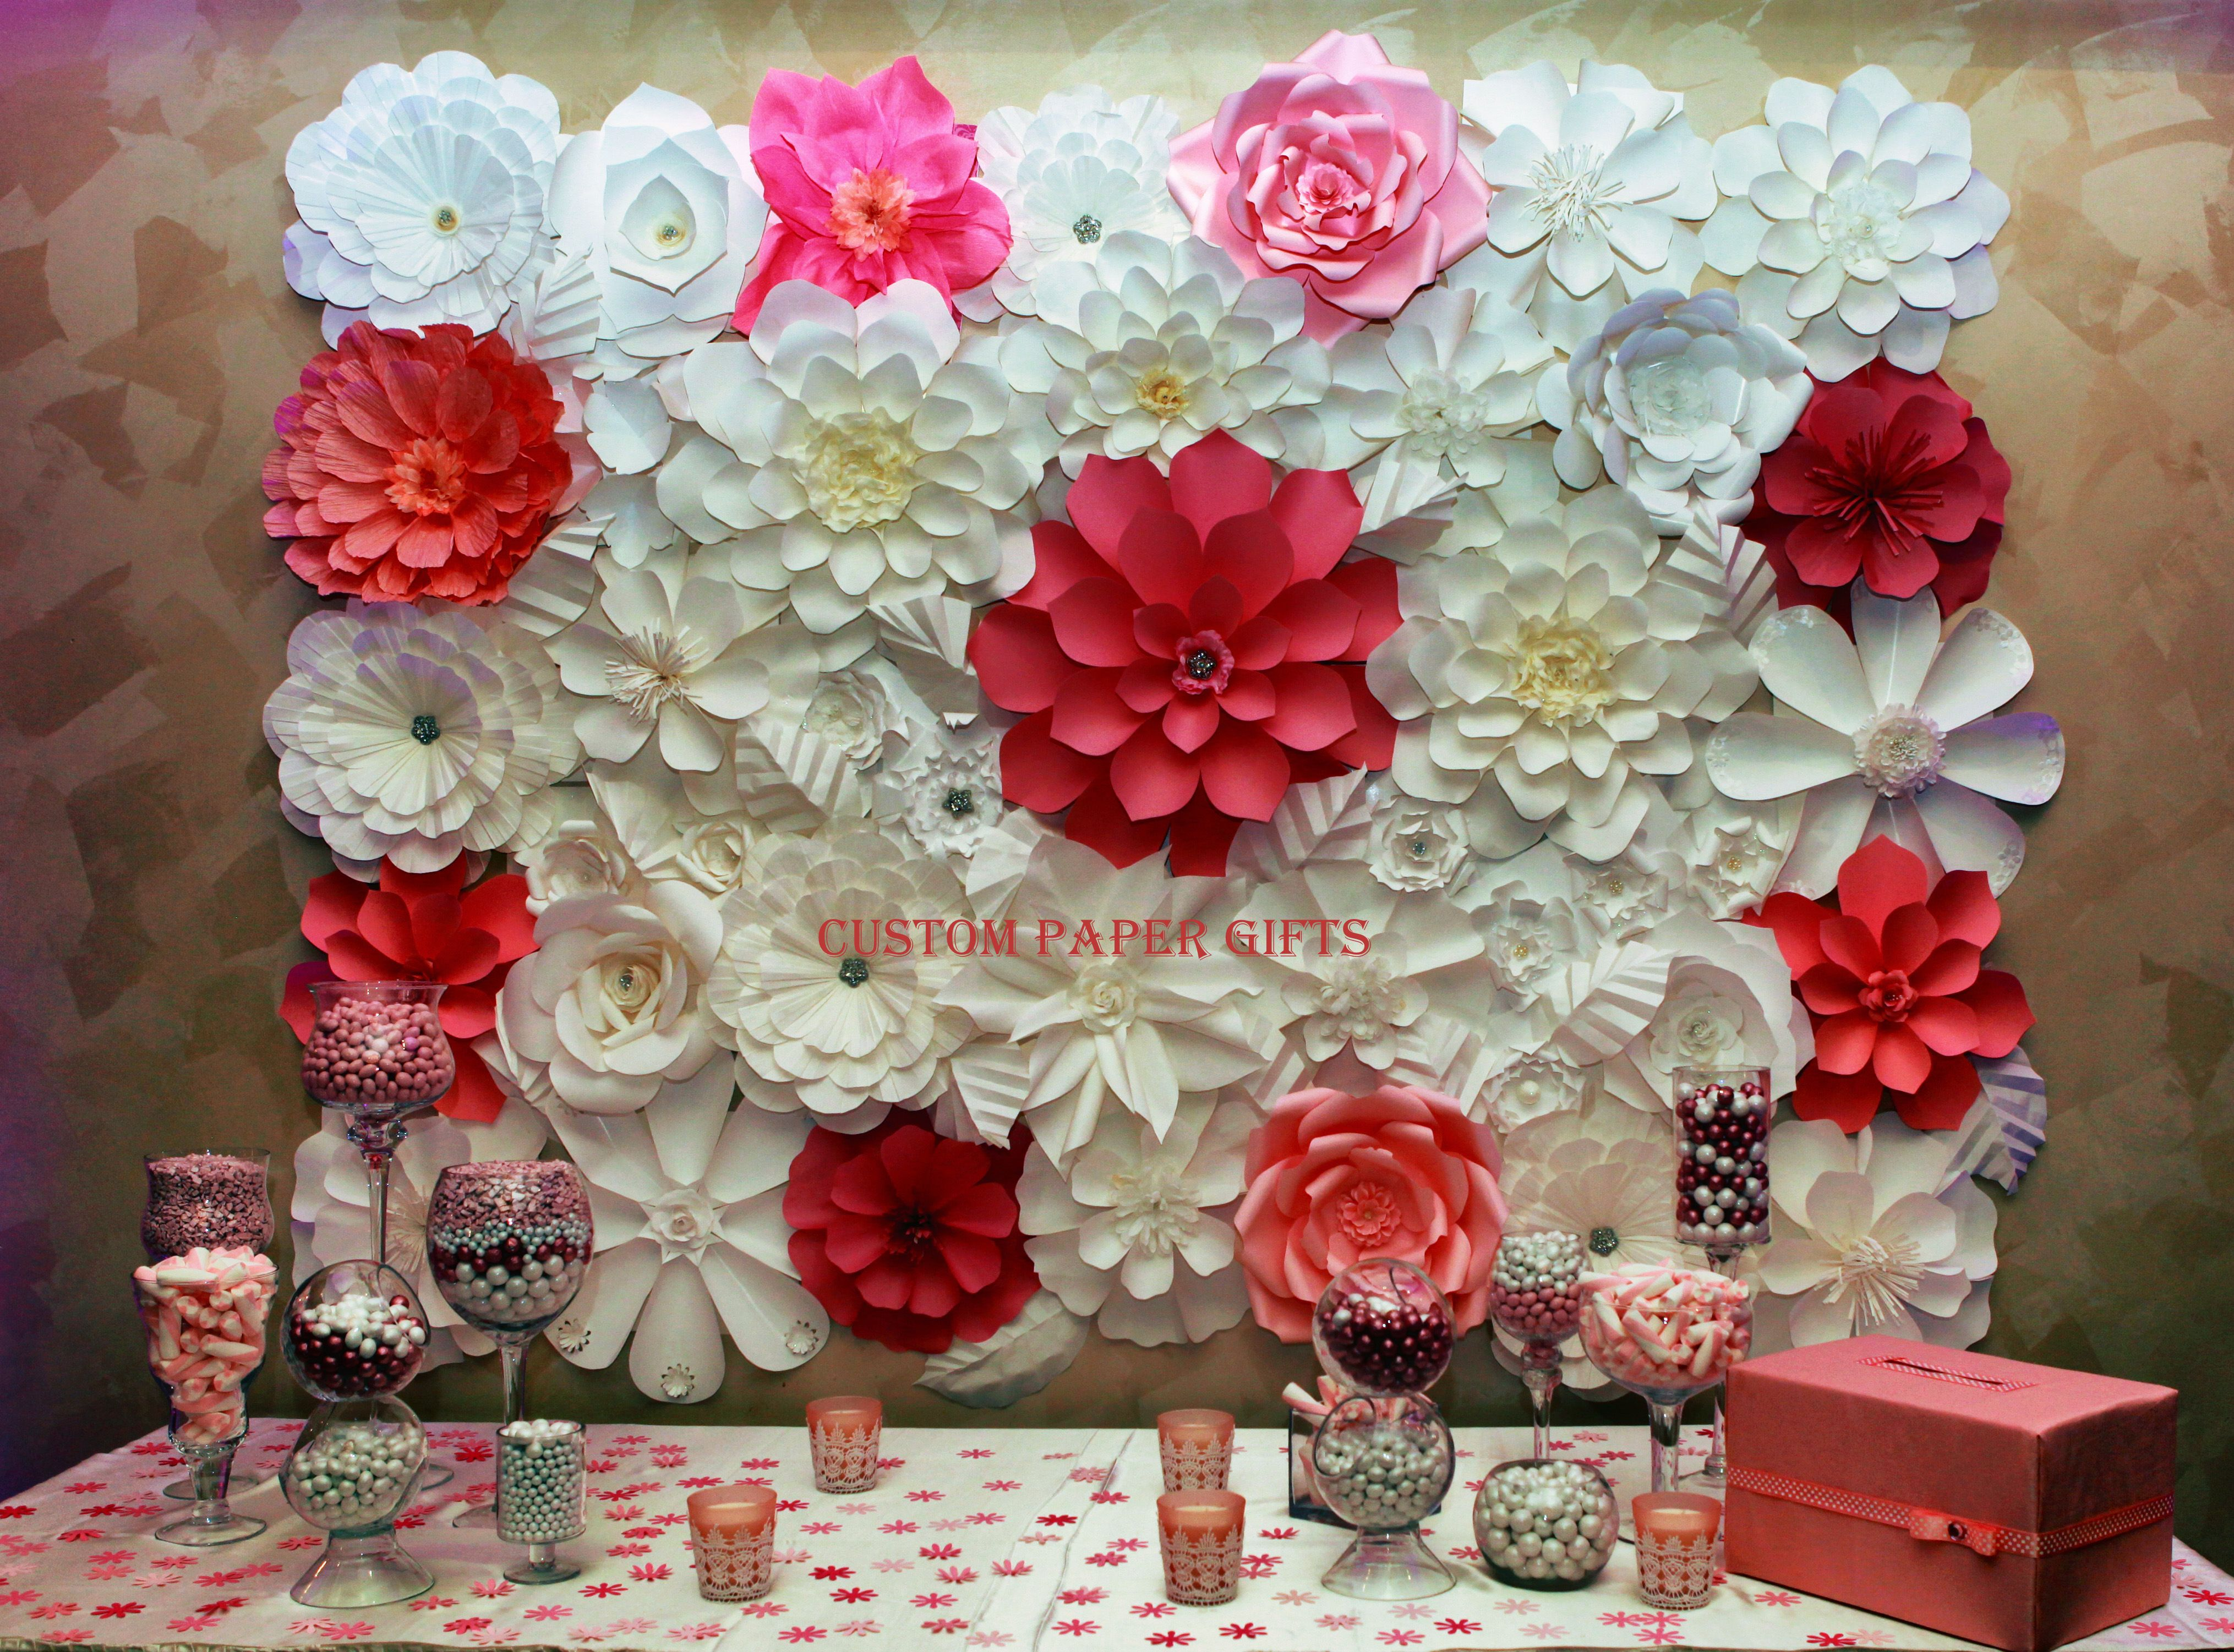 Handmade wall decoration paper flowers by custom money gifts handmade wall decoration paper flowers by custom money gifts photo by photomaniac7 amipublicfo Images